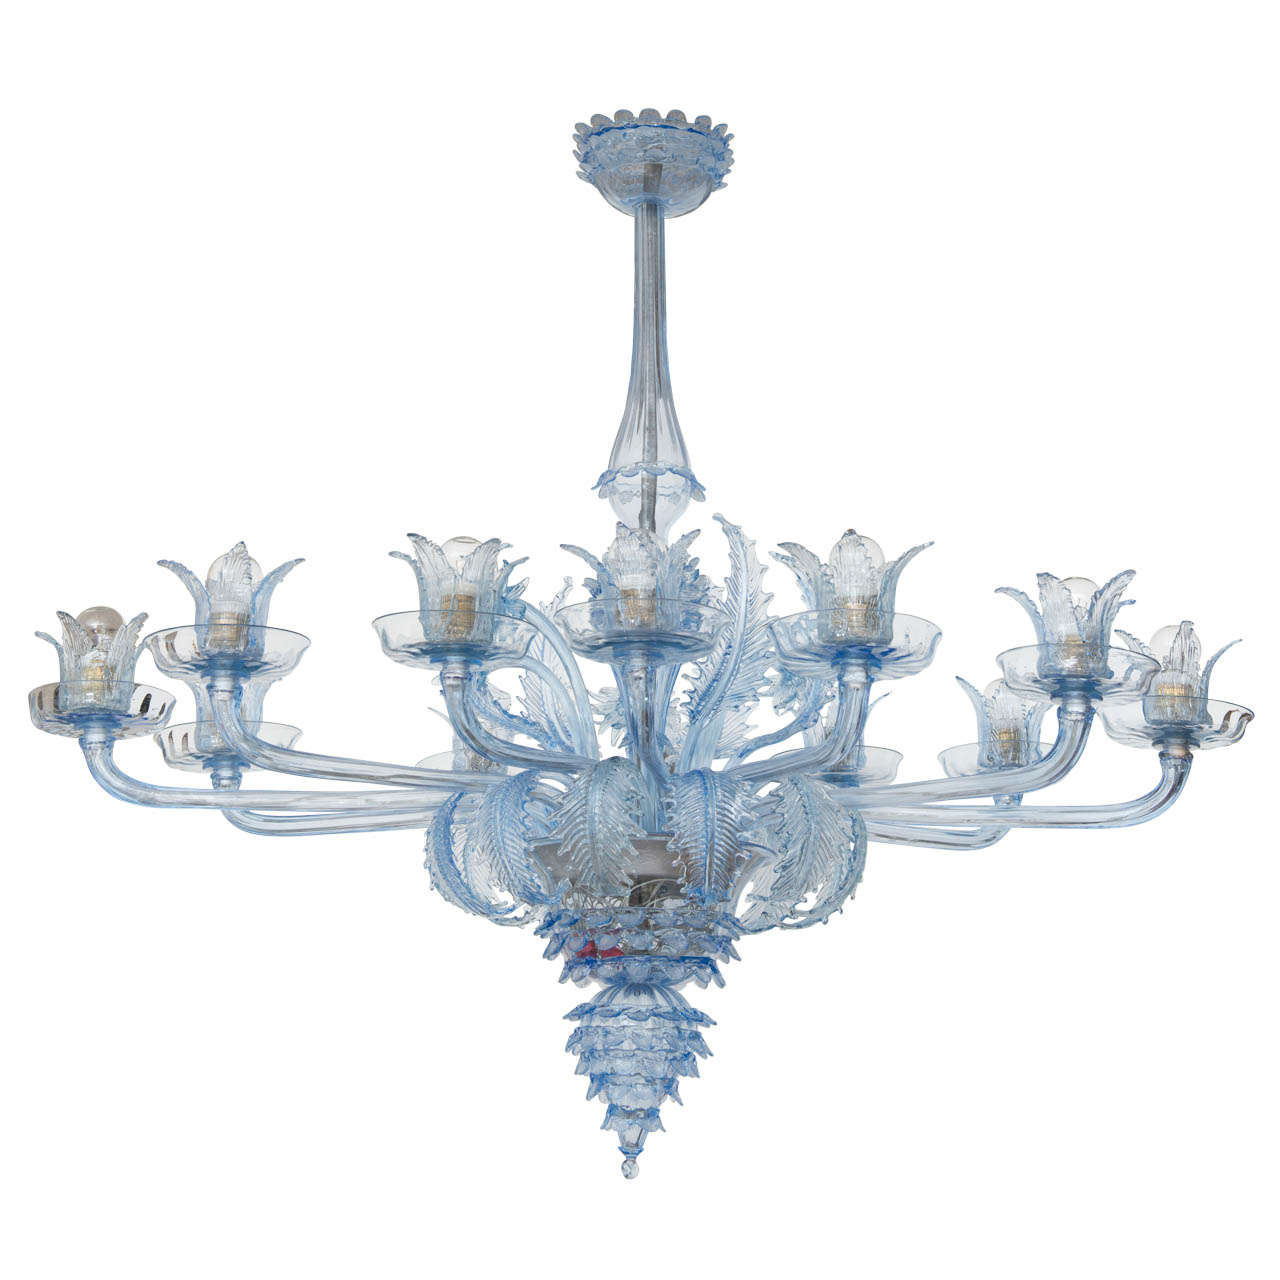 Venetian chandelier by barovier e toso for sale at 1stdibs venetian chandelier by barovier e toso for sale aloadofball Gallery